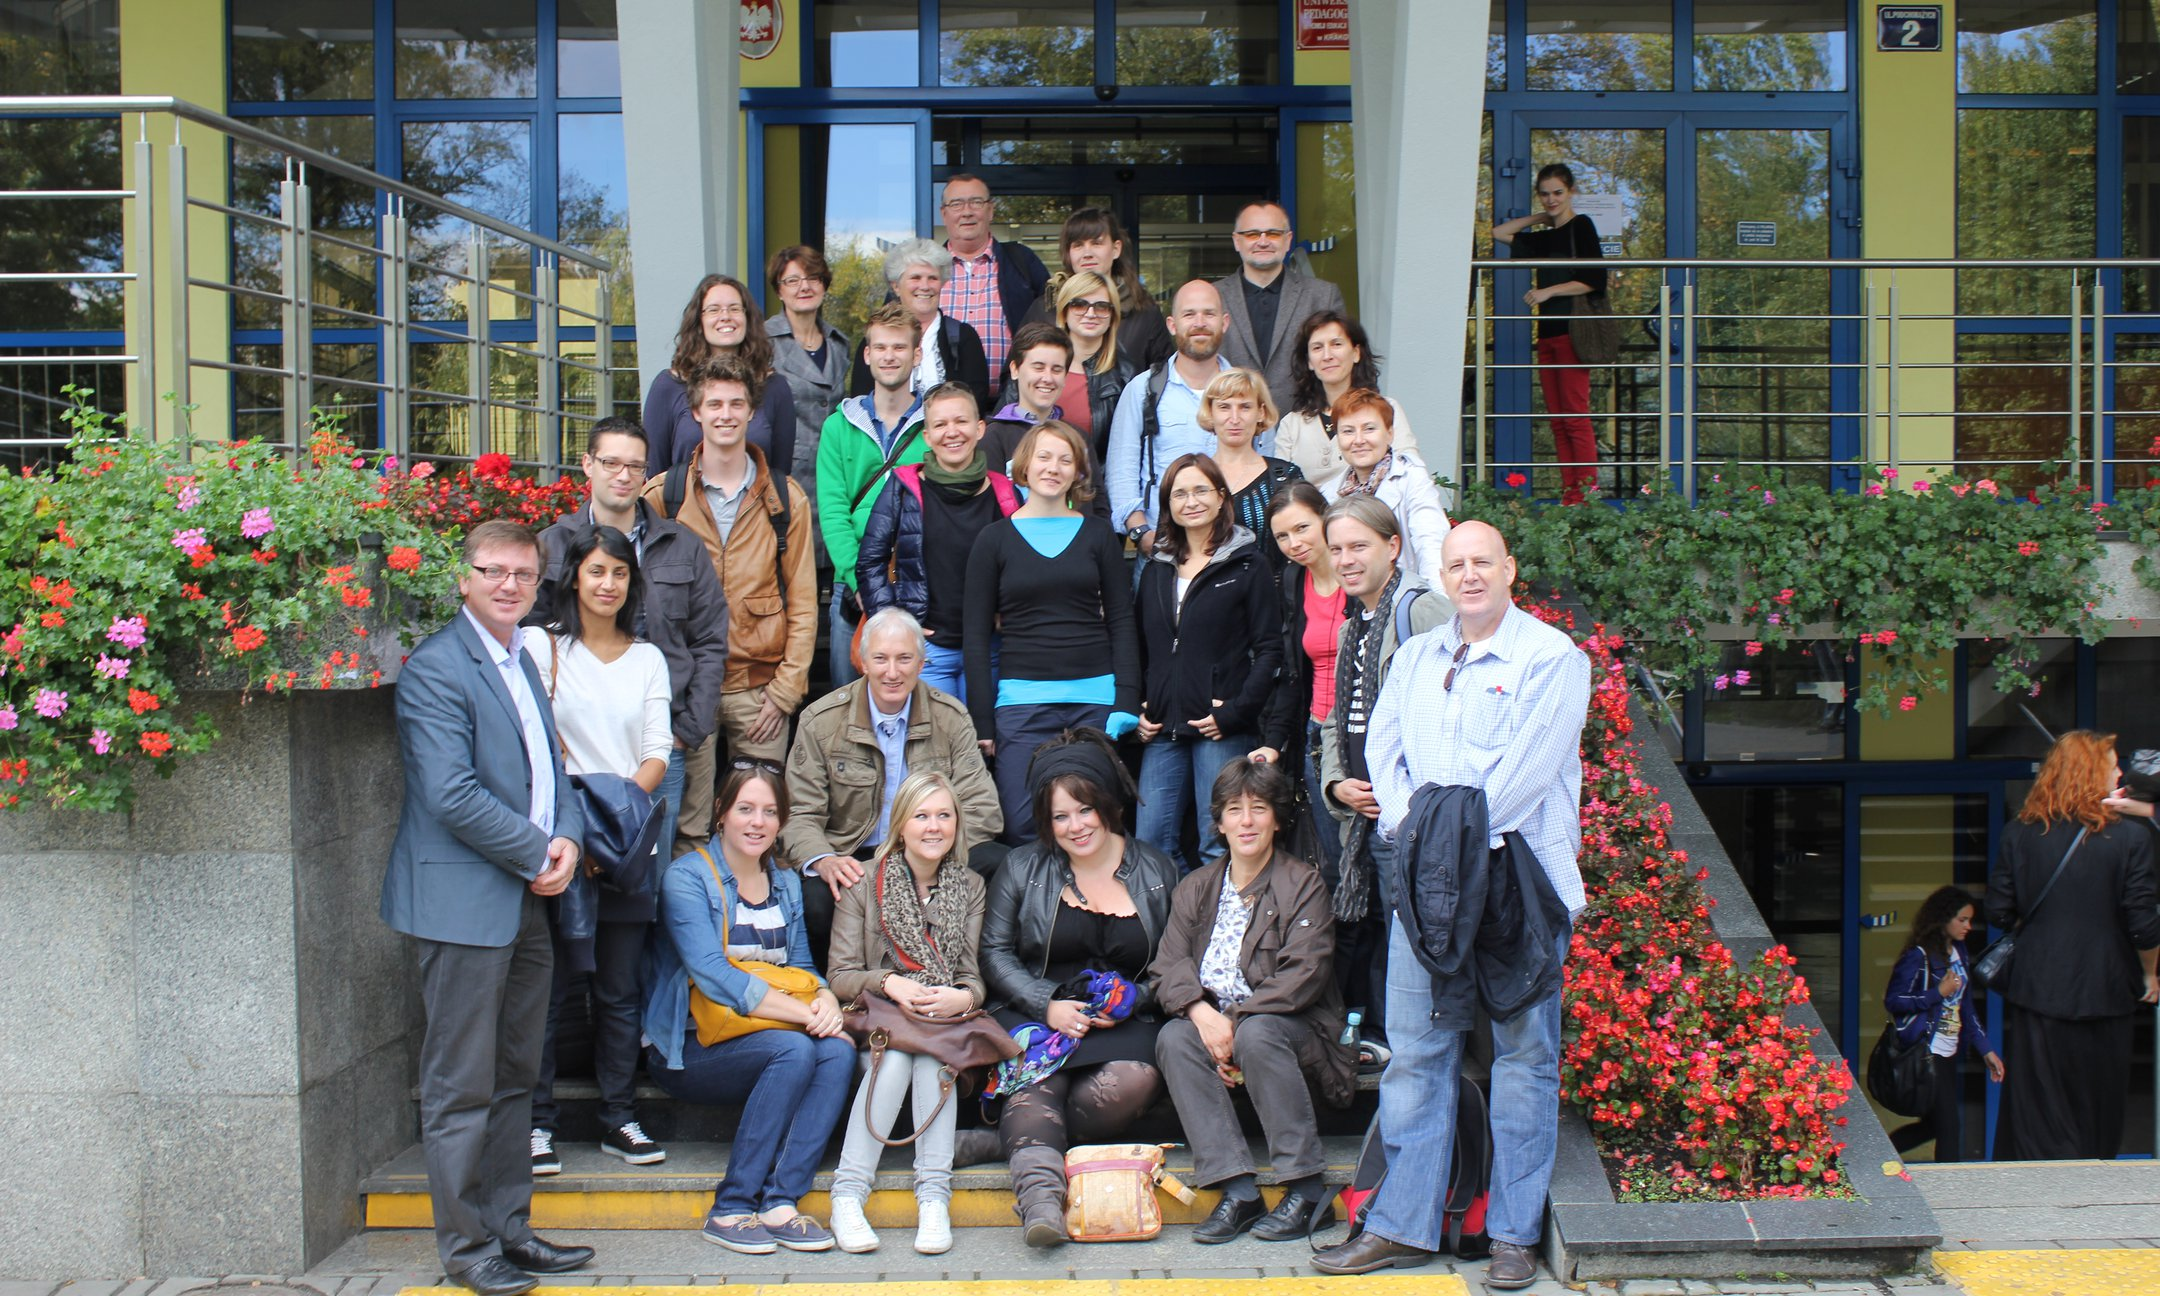 Participants in front of the Pedagogical University in Cracow (September 2012)